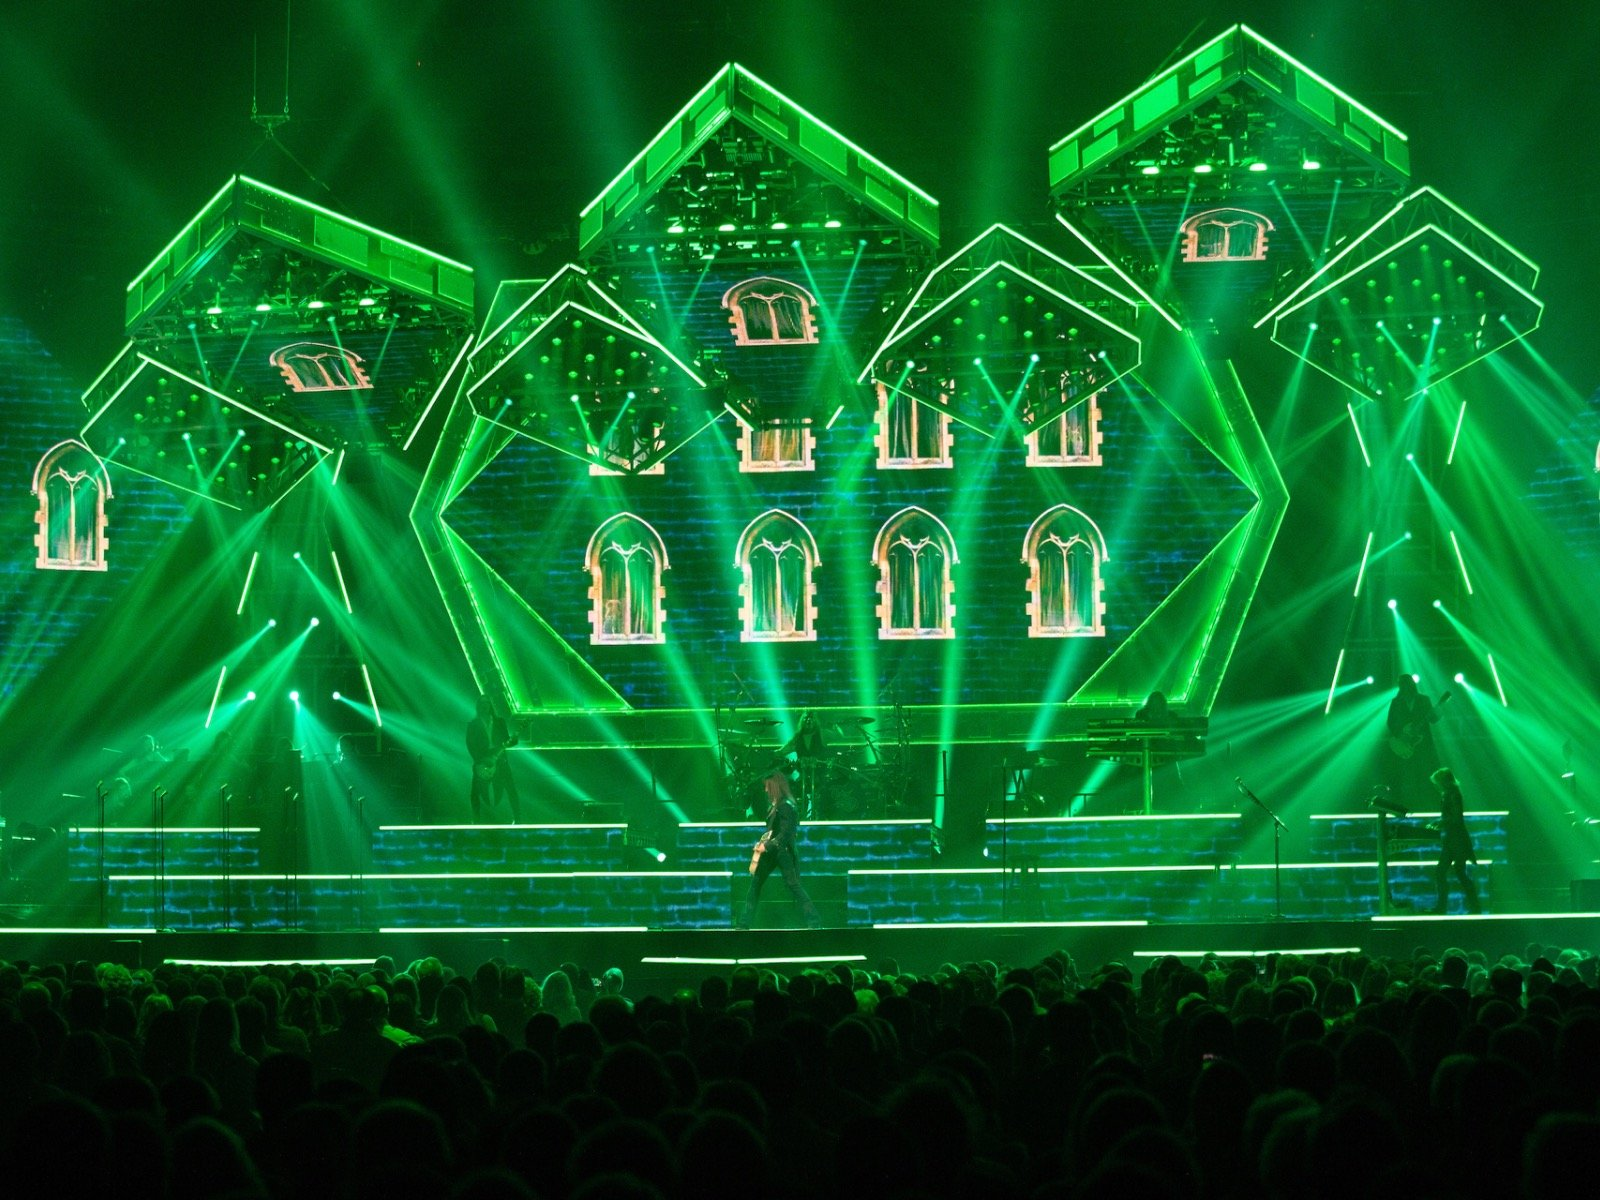 Trans Siberian Orchestra Christmas In Milwaukee 2020 5 reasons you shouldn't have missed Trans Siberian Orchestra's